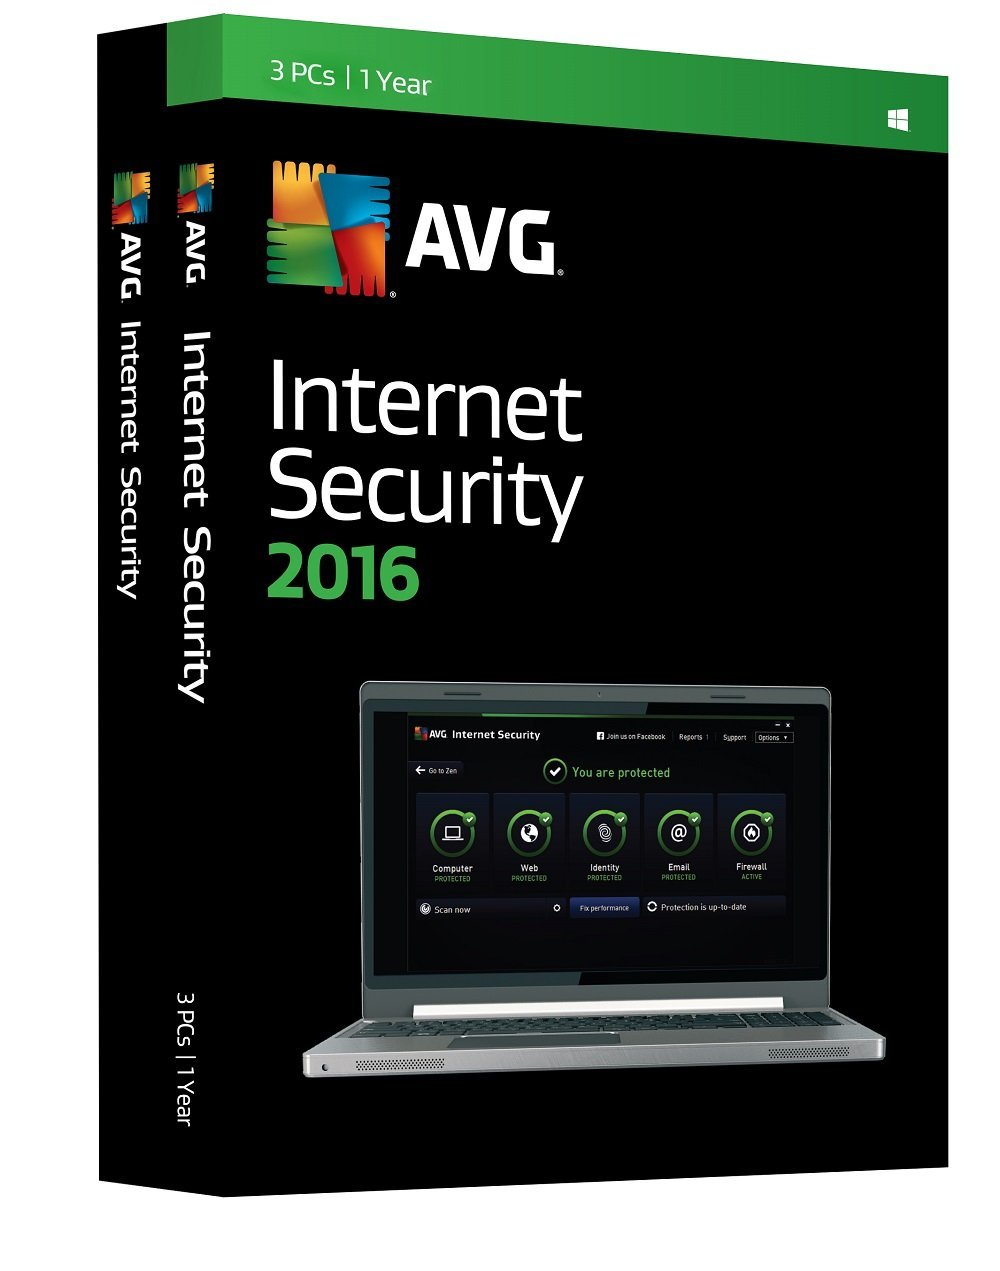 AVG Internet Security 2016 3PC 1Year